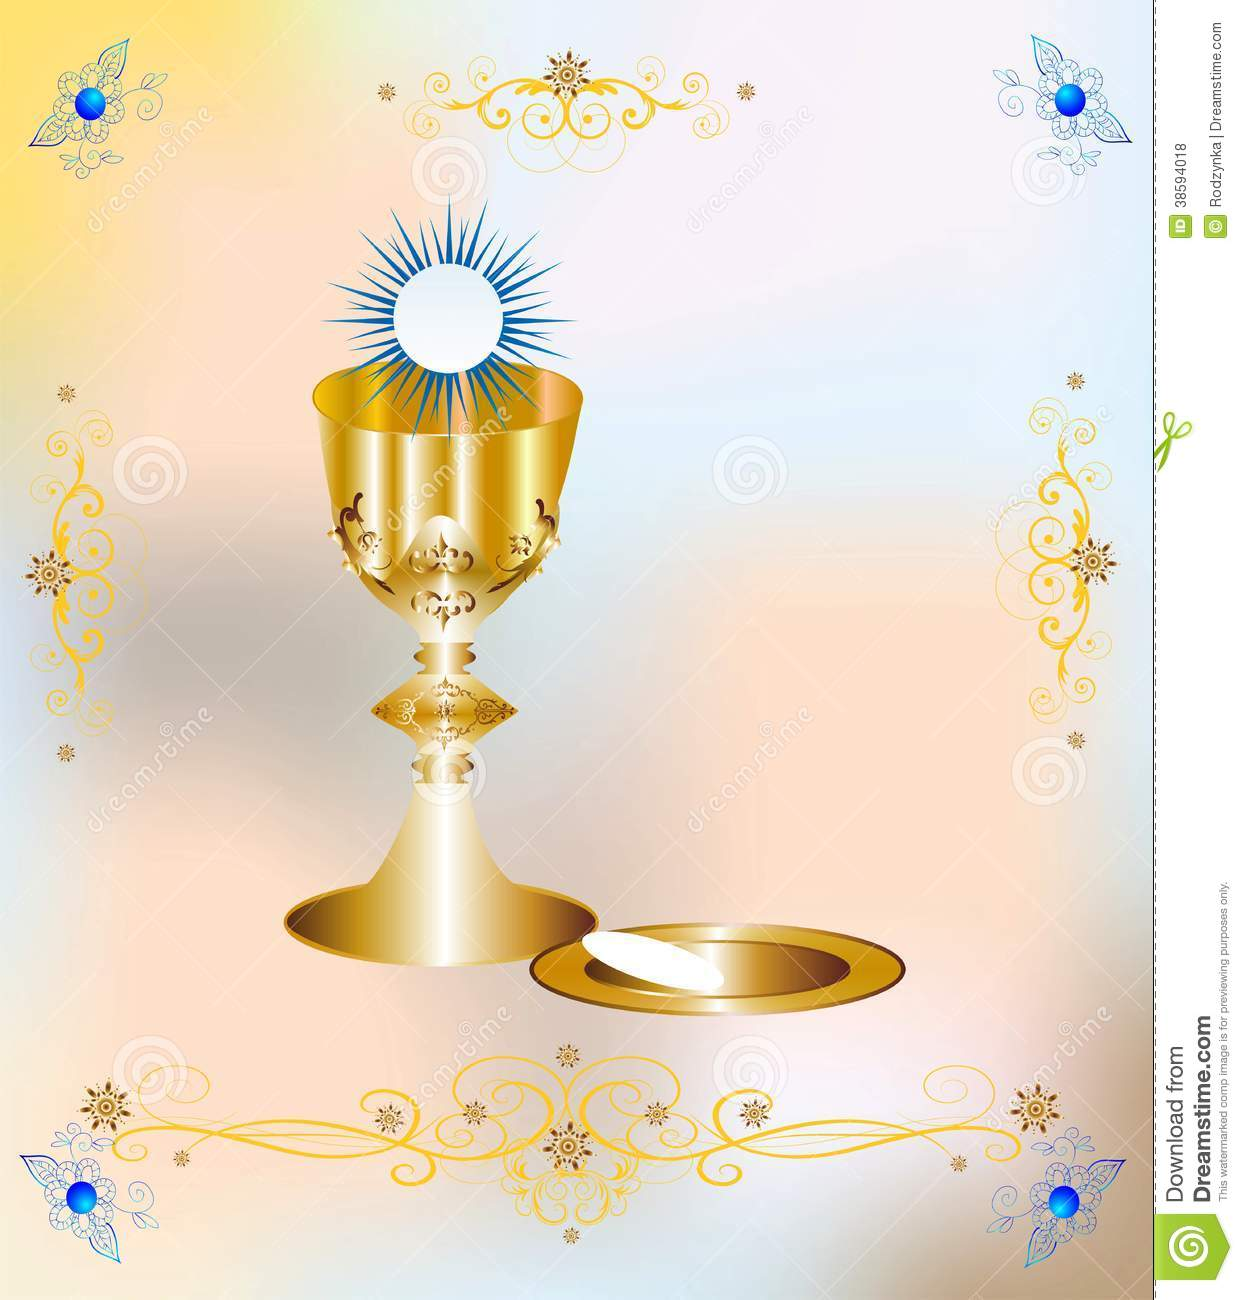 Sad Love Quotes Hd Wallpaper Free Download Download First Holy Communion Wallpaper Gallery